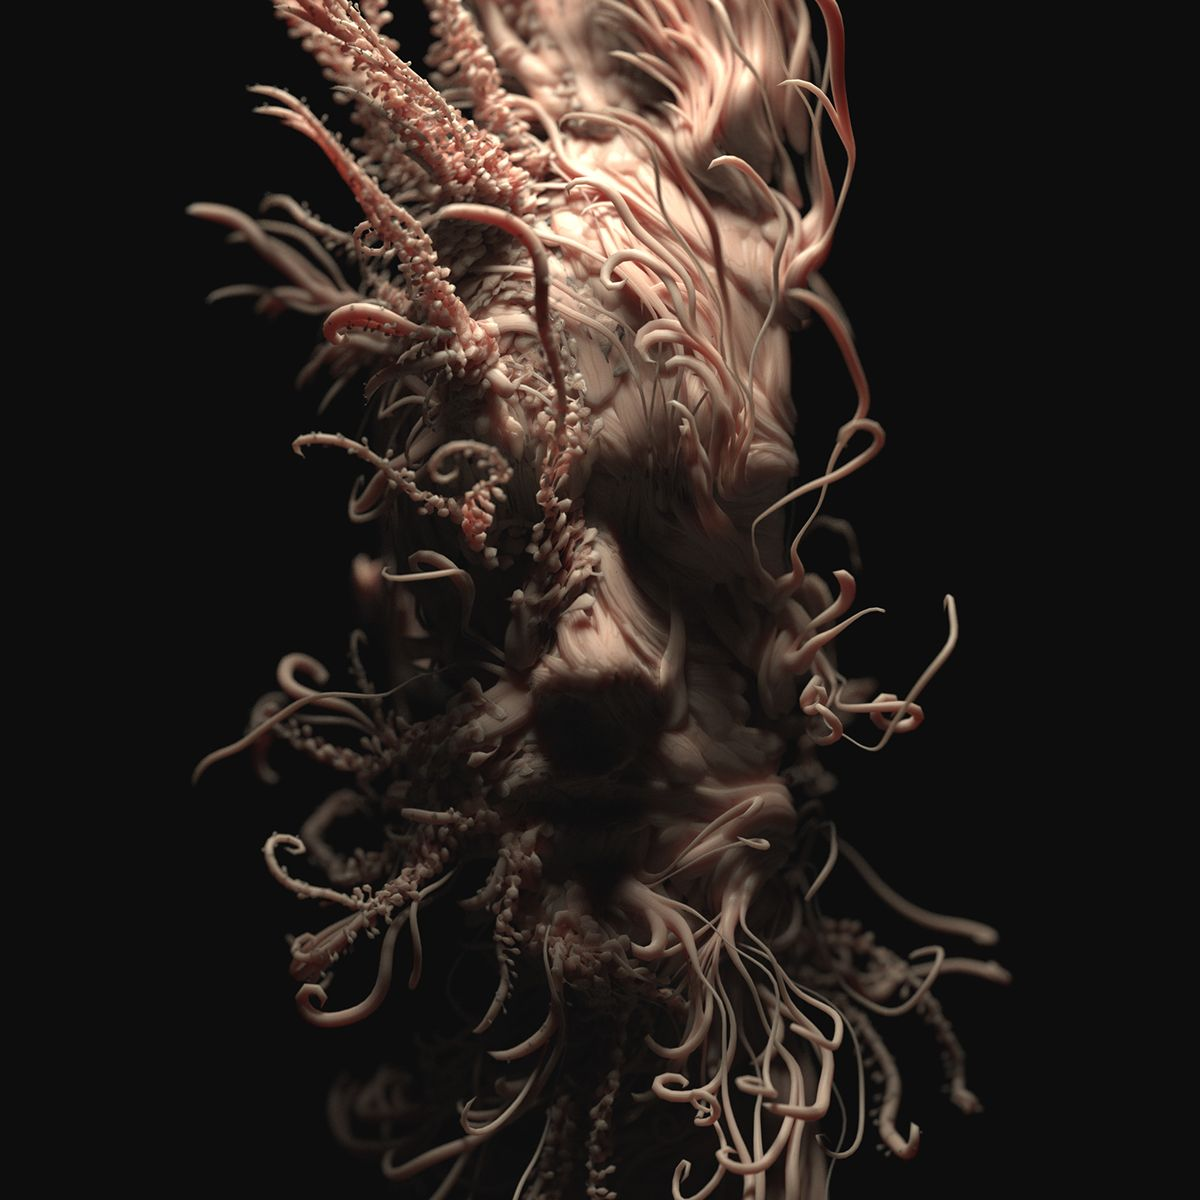 Abstract Portraits on Behance Abstract portrait